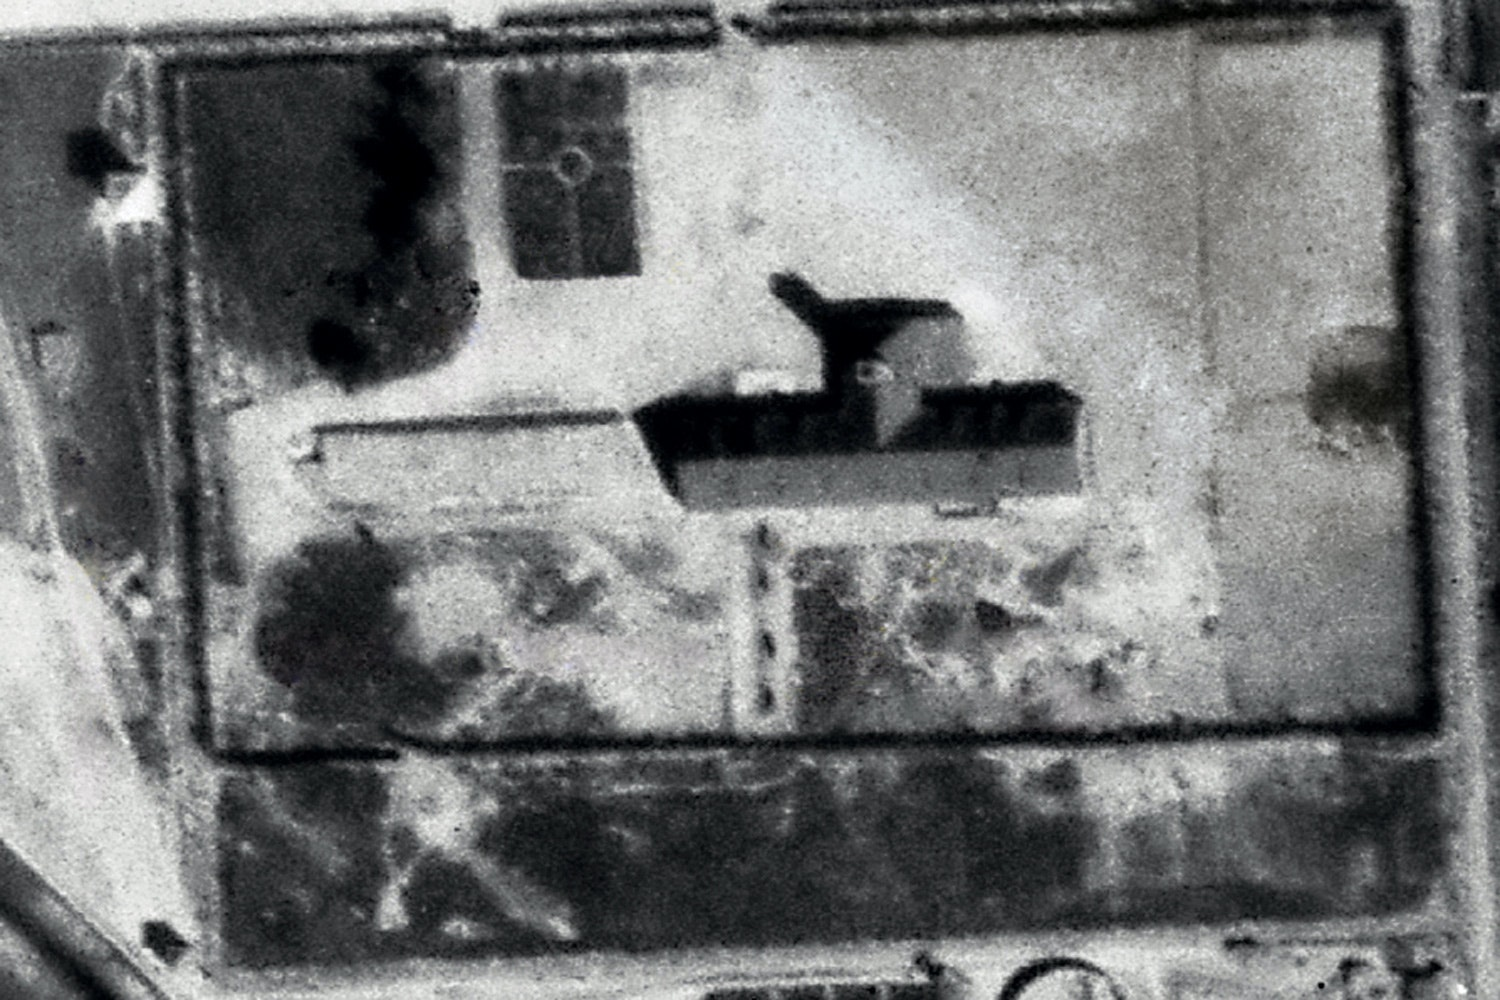 Auschwitz seen from above